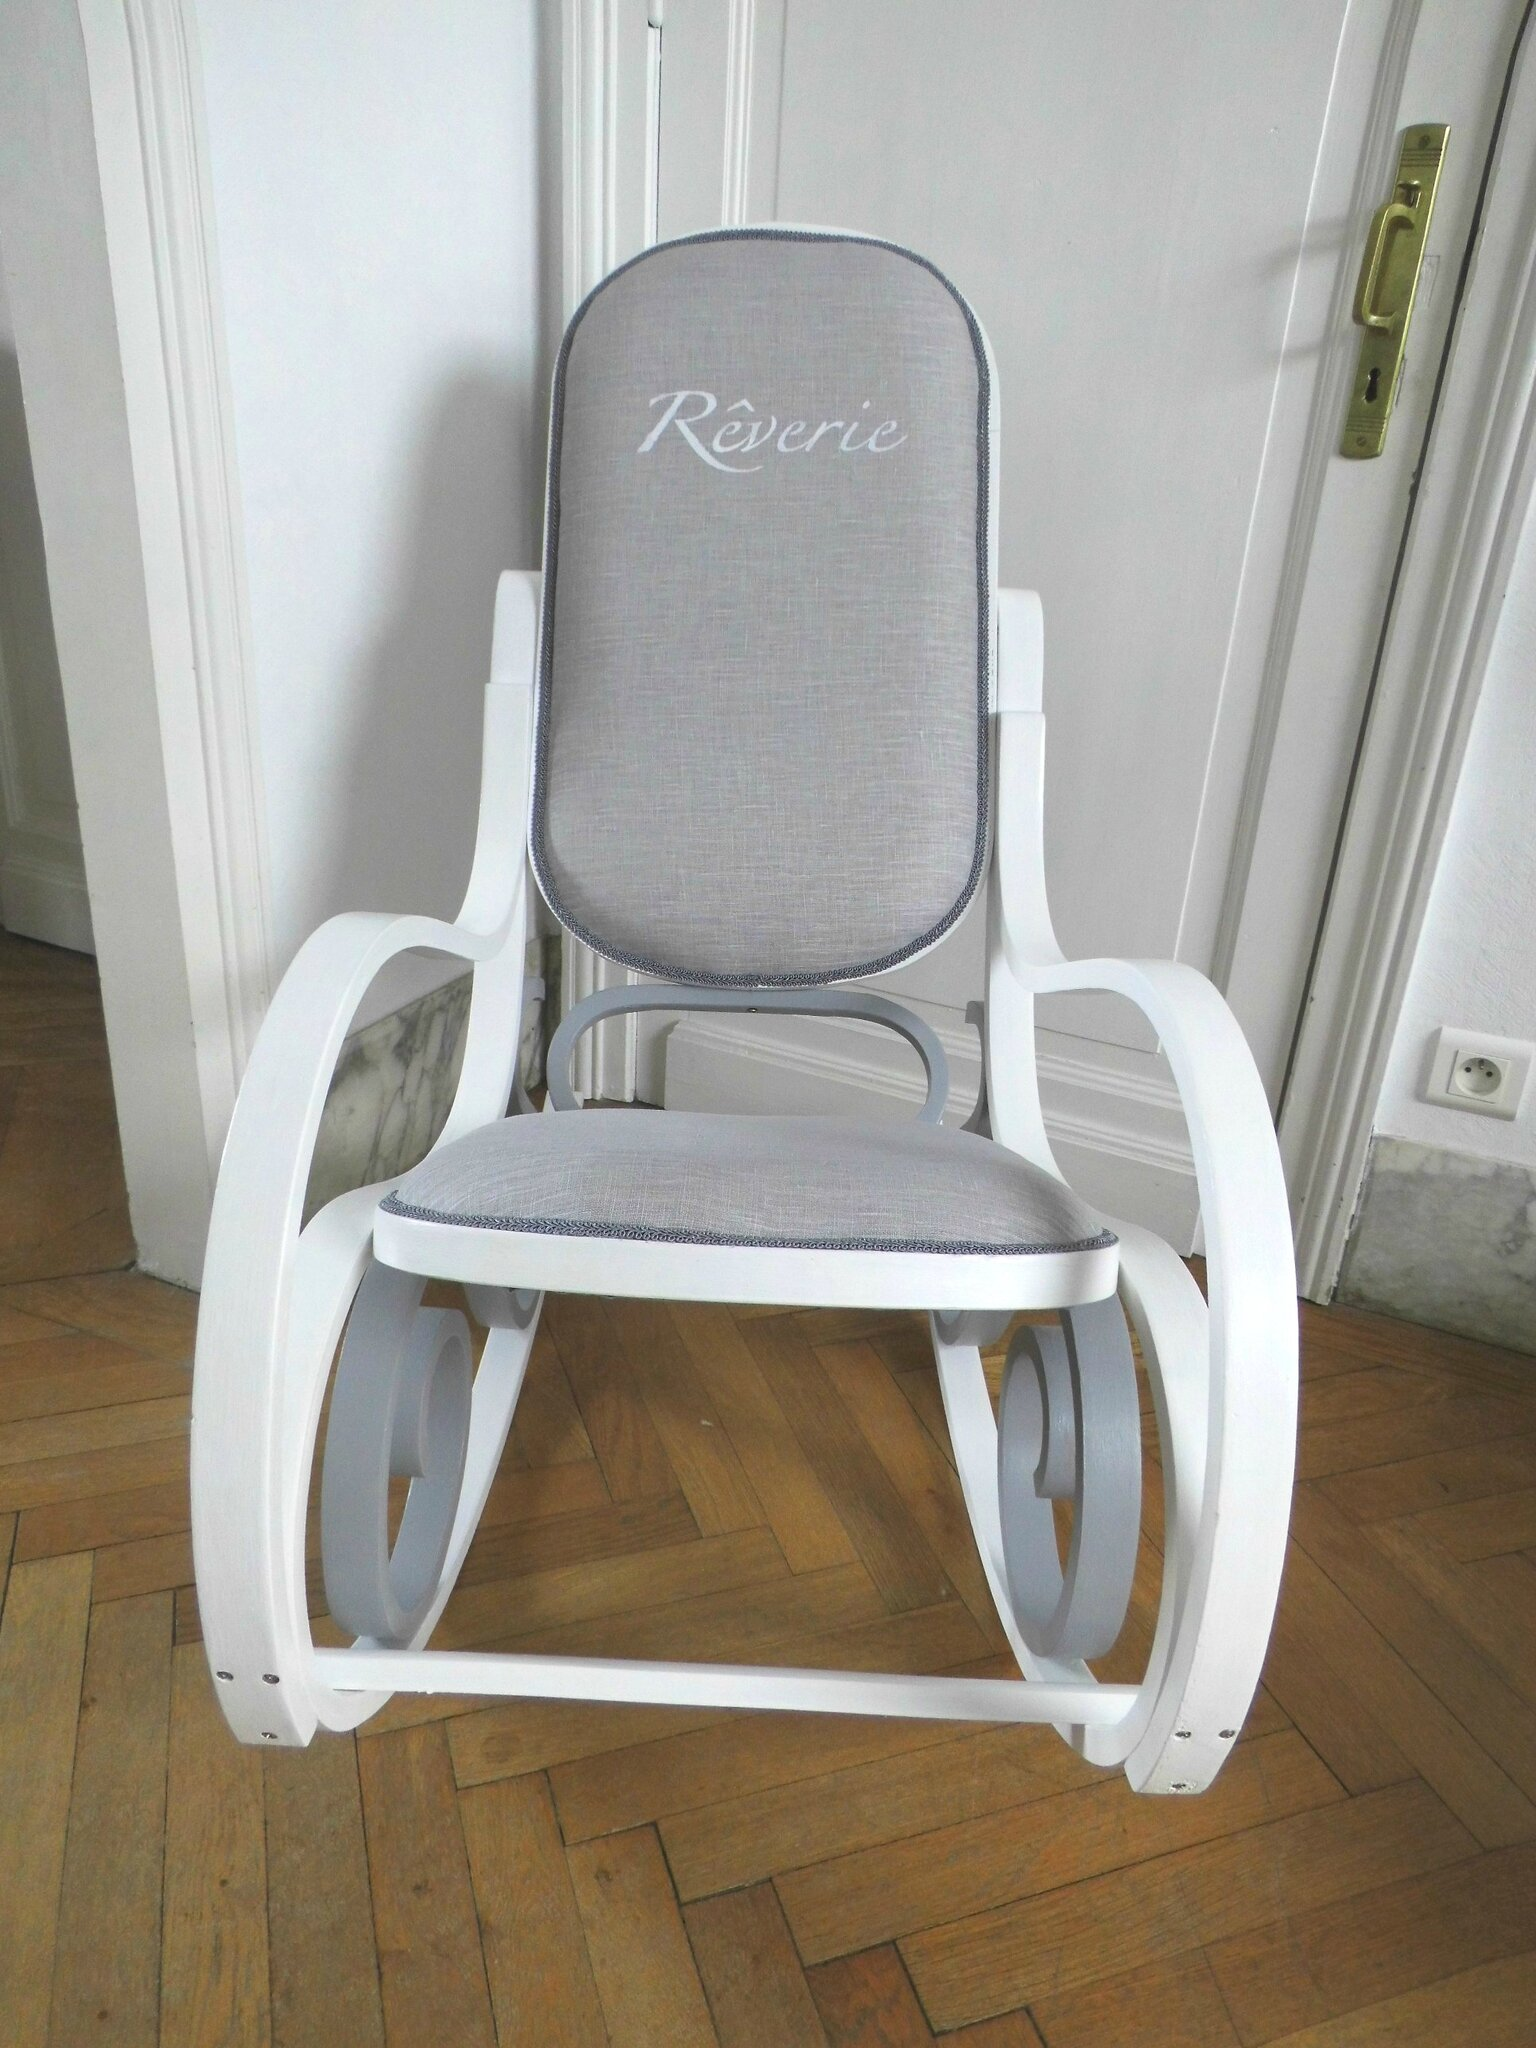 rocking chair pour allaiter perfect rocking chair pour allaiter with rocking chair pour. Black Bedroom Furniture Sets. Home Design Ideas